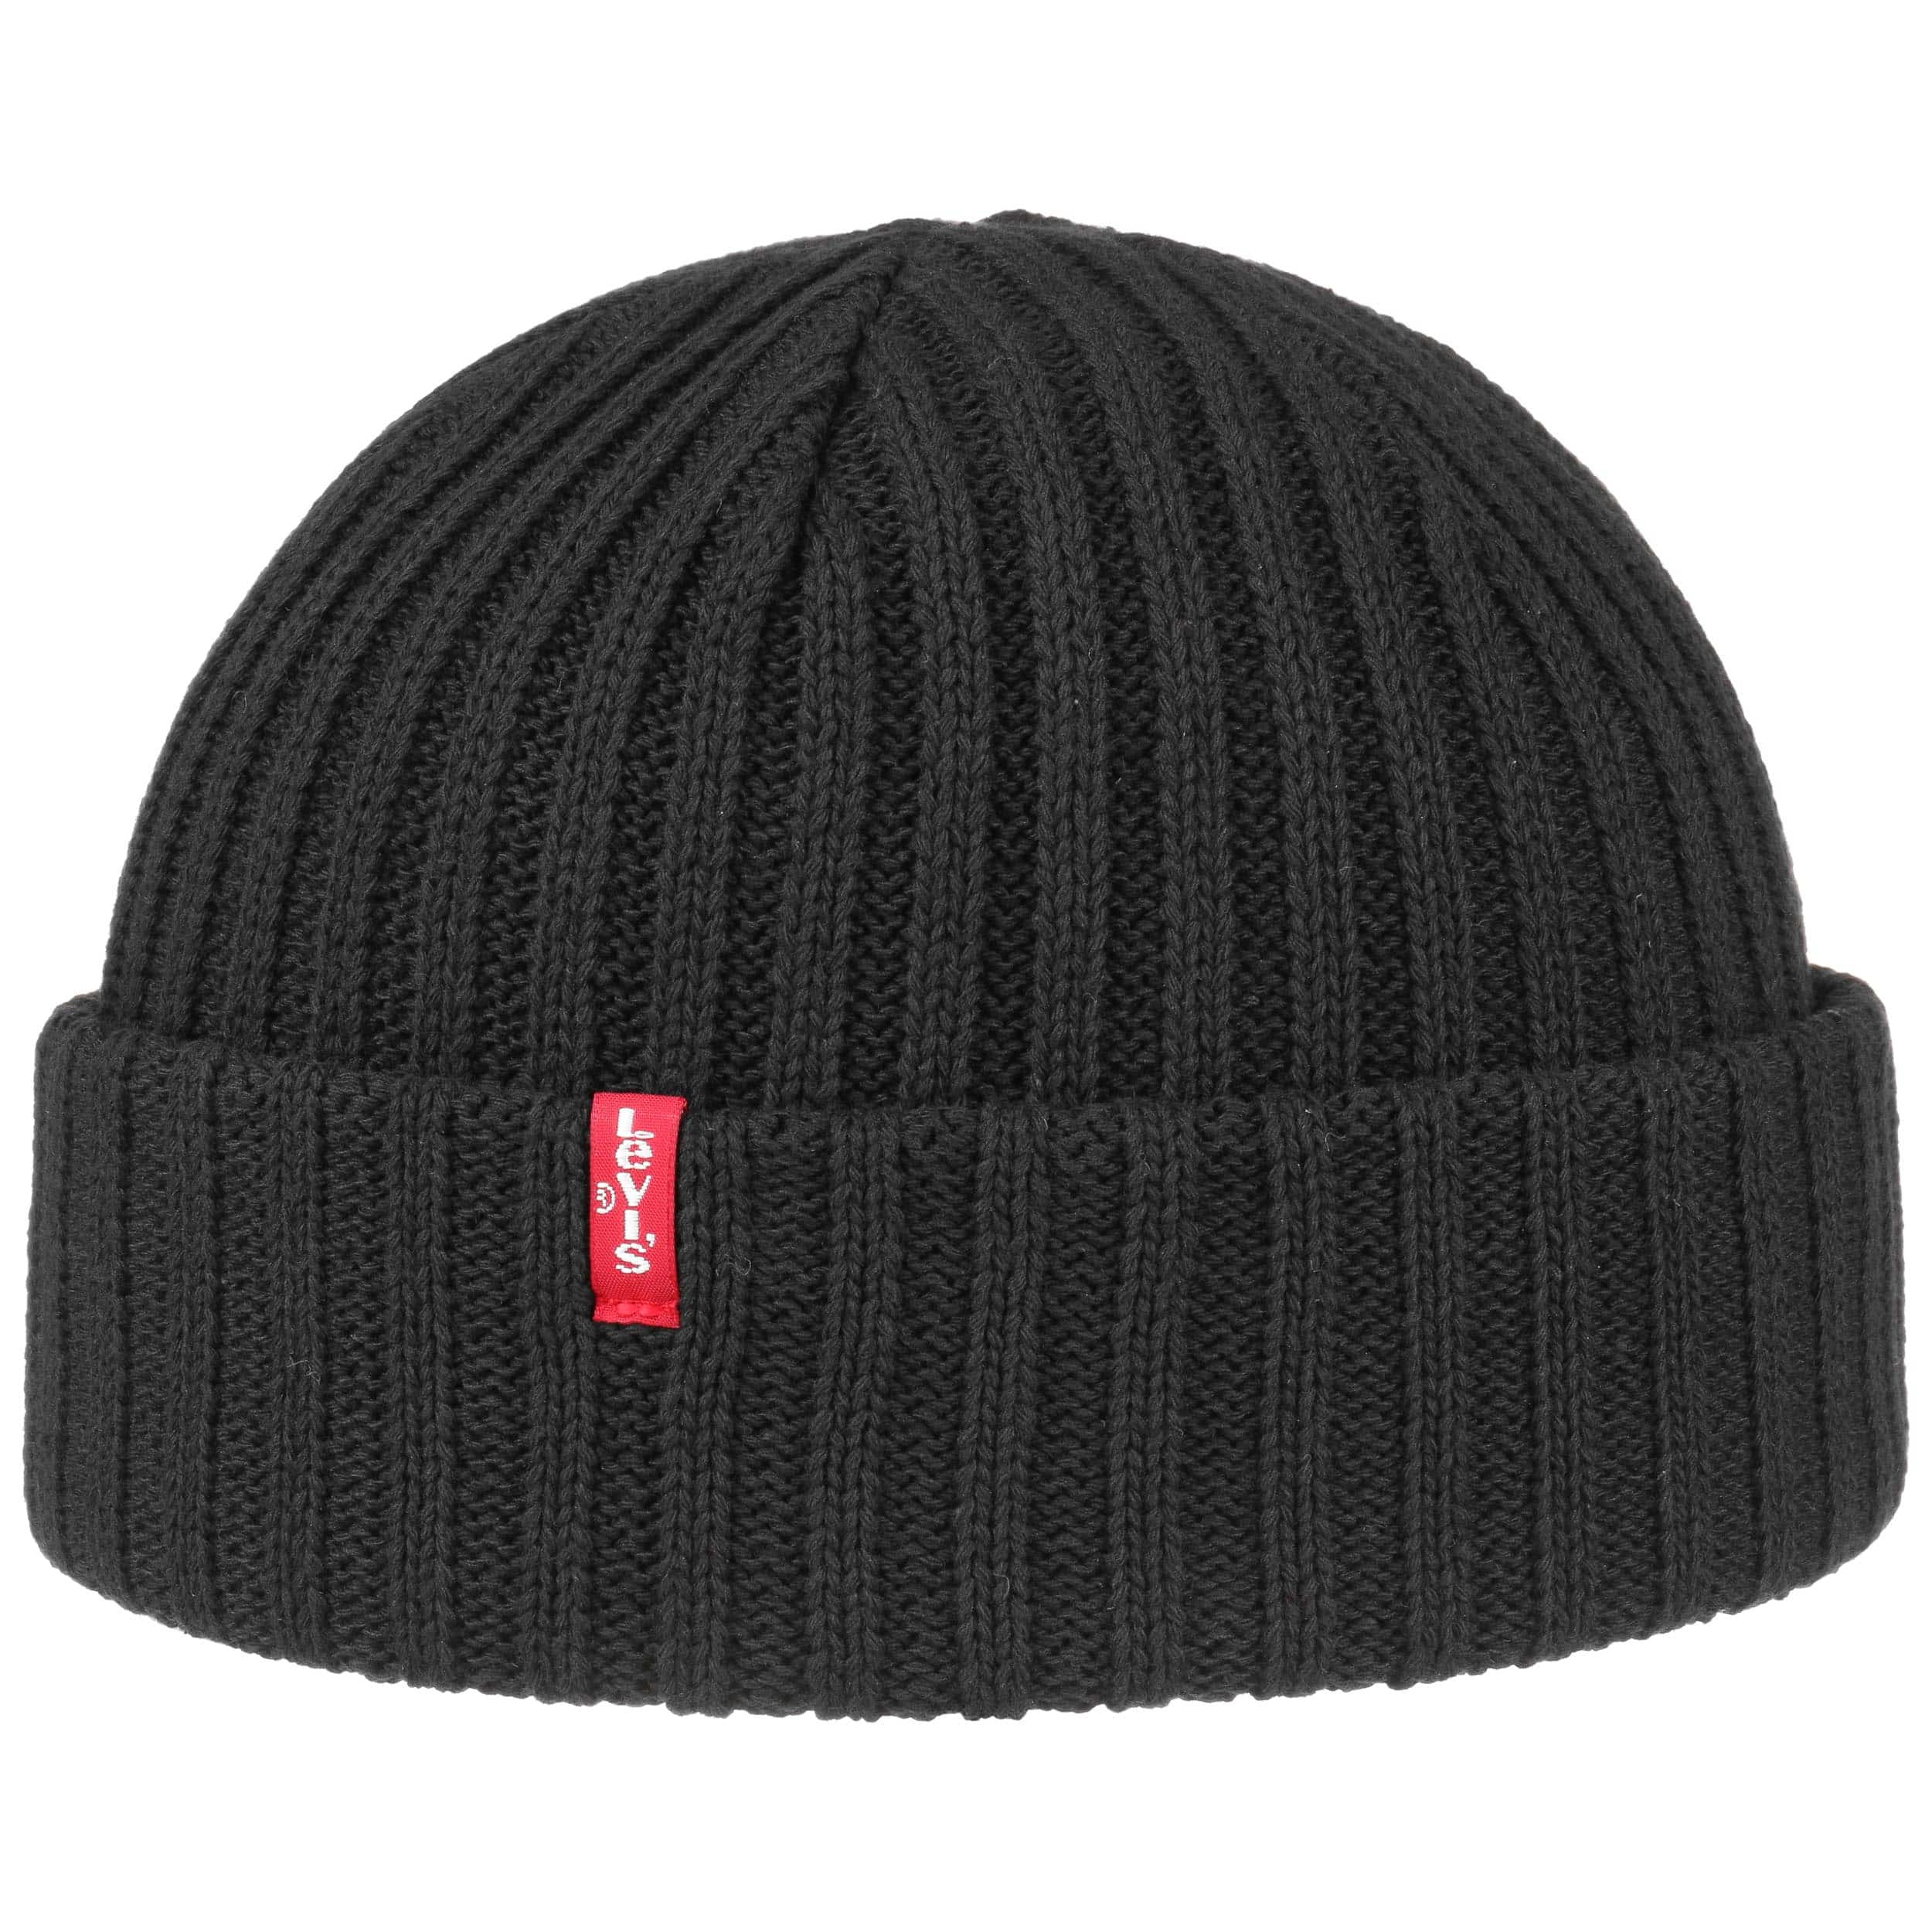 bd78ff1d985 ... Ribbed Cotton Beanie Hat by Levi´s - black 3 ...